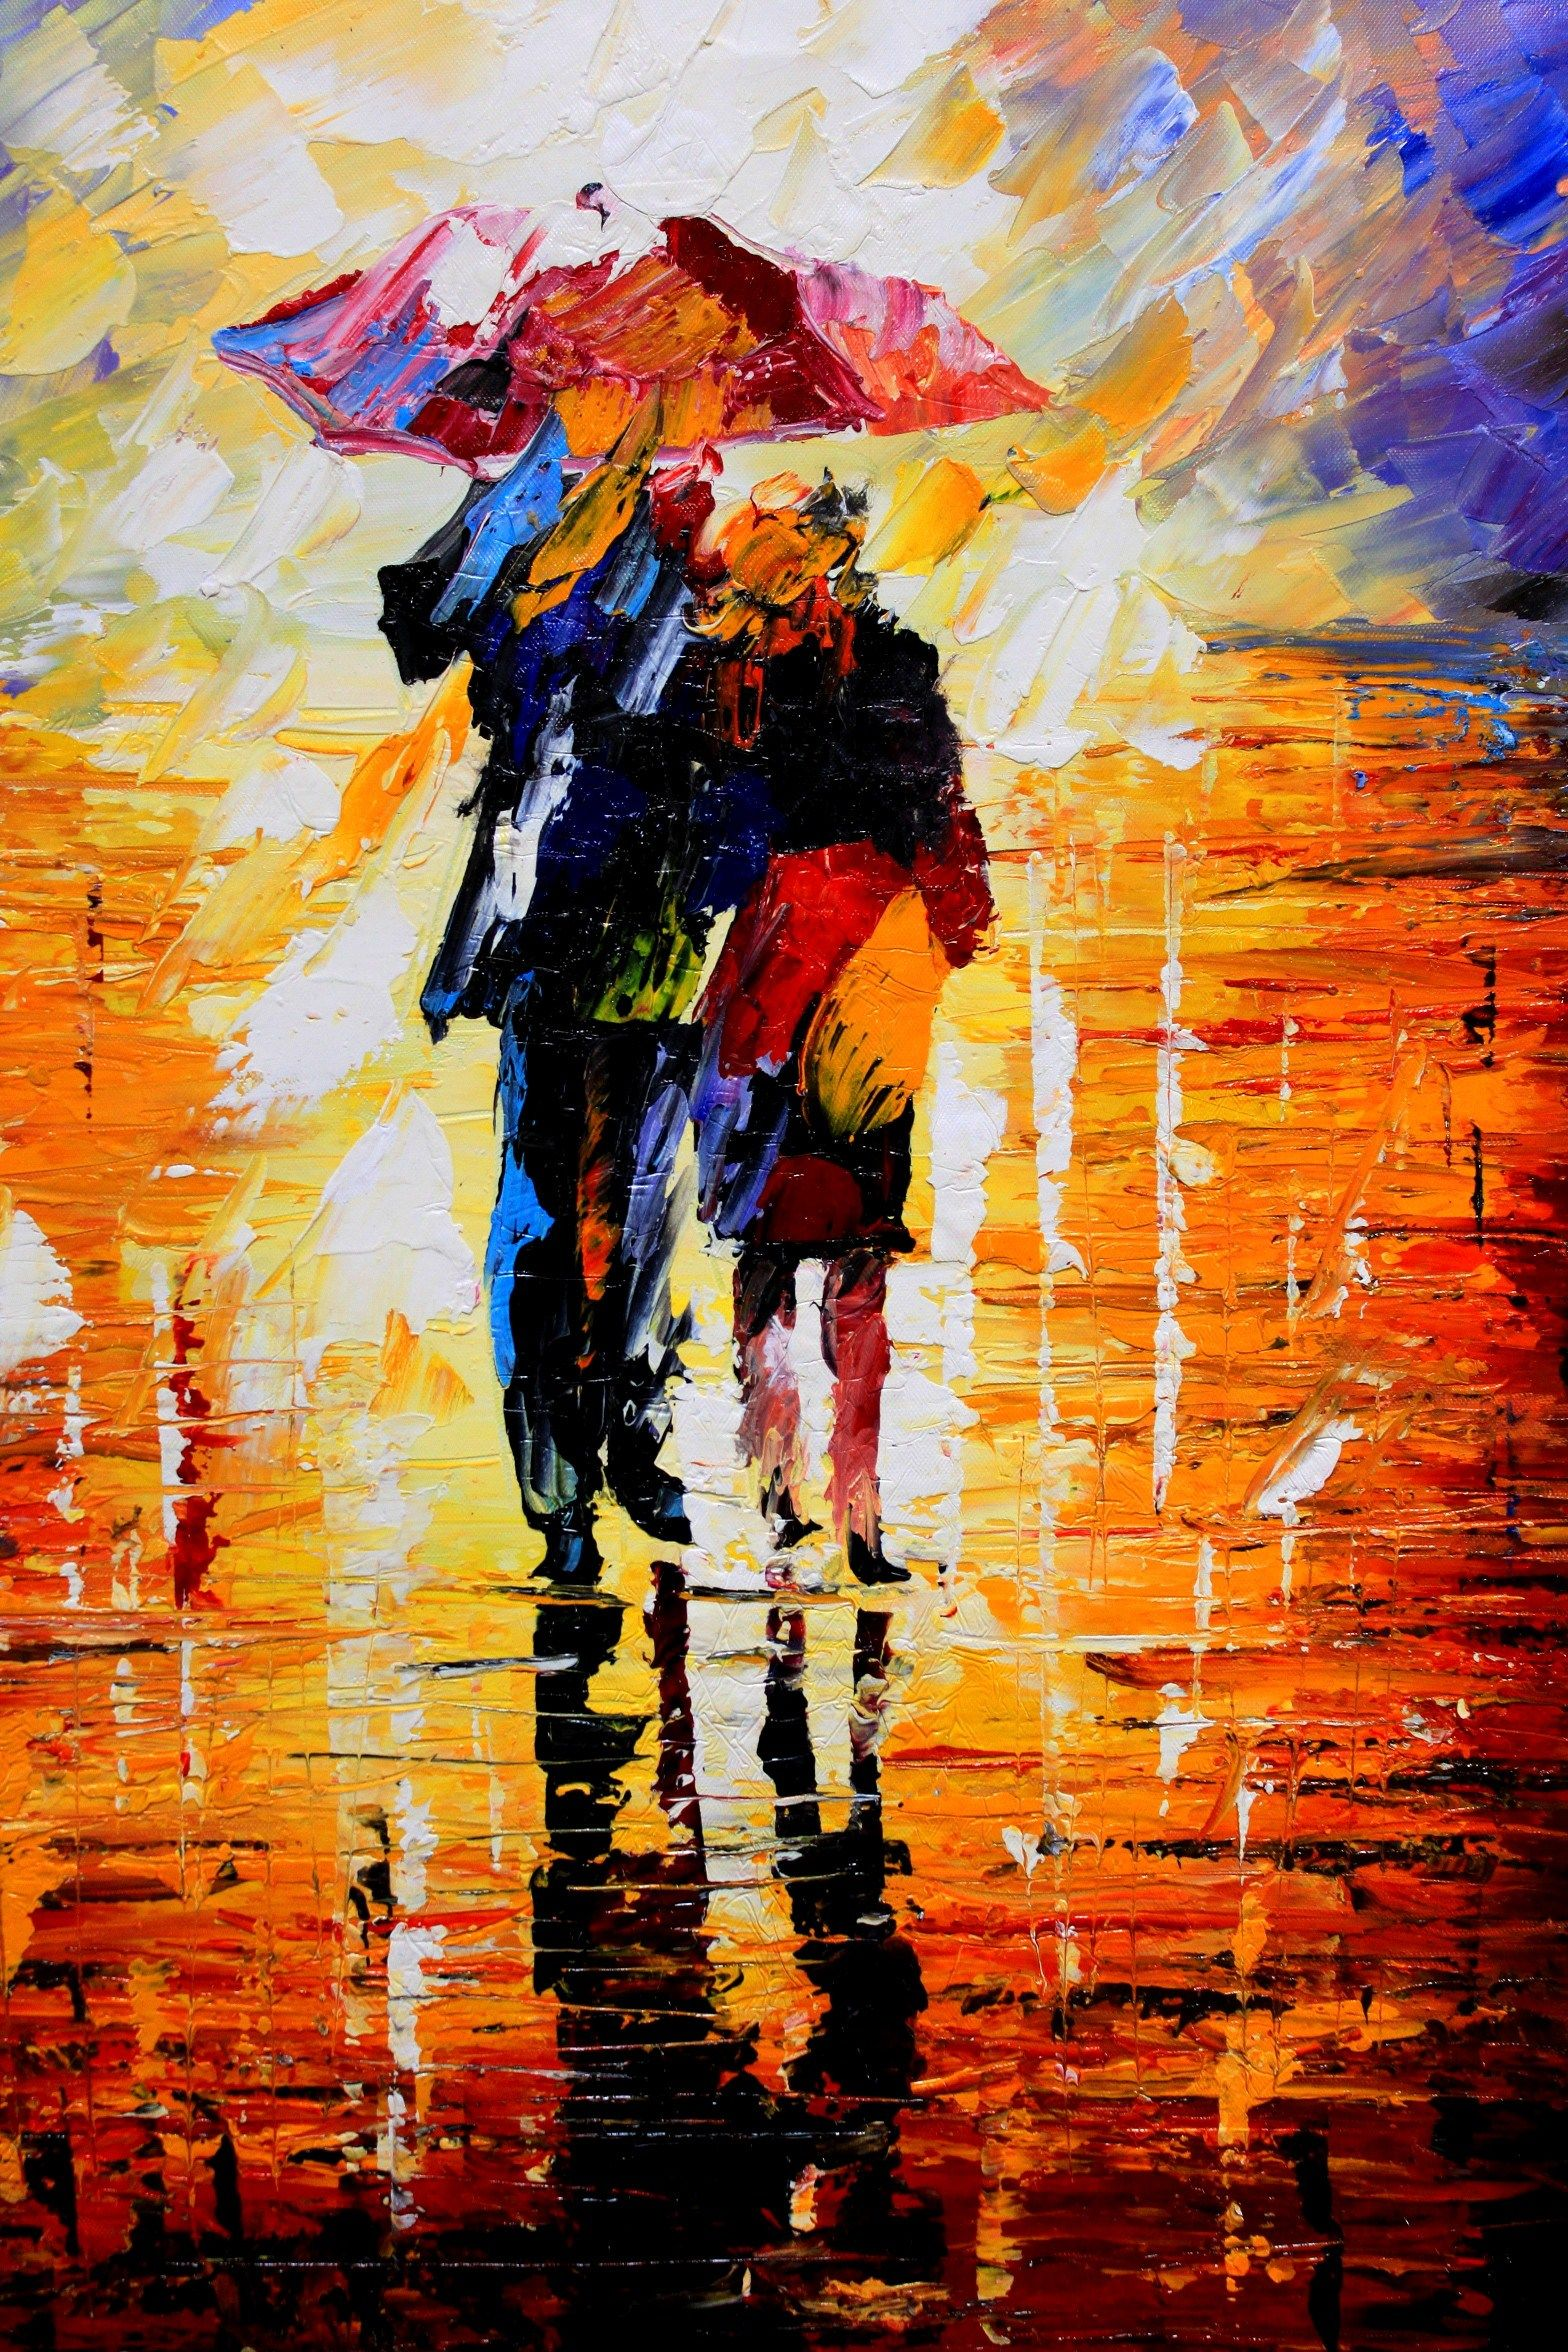 Rainy night oil painting by unknown artist Painting